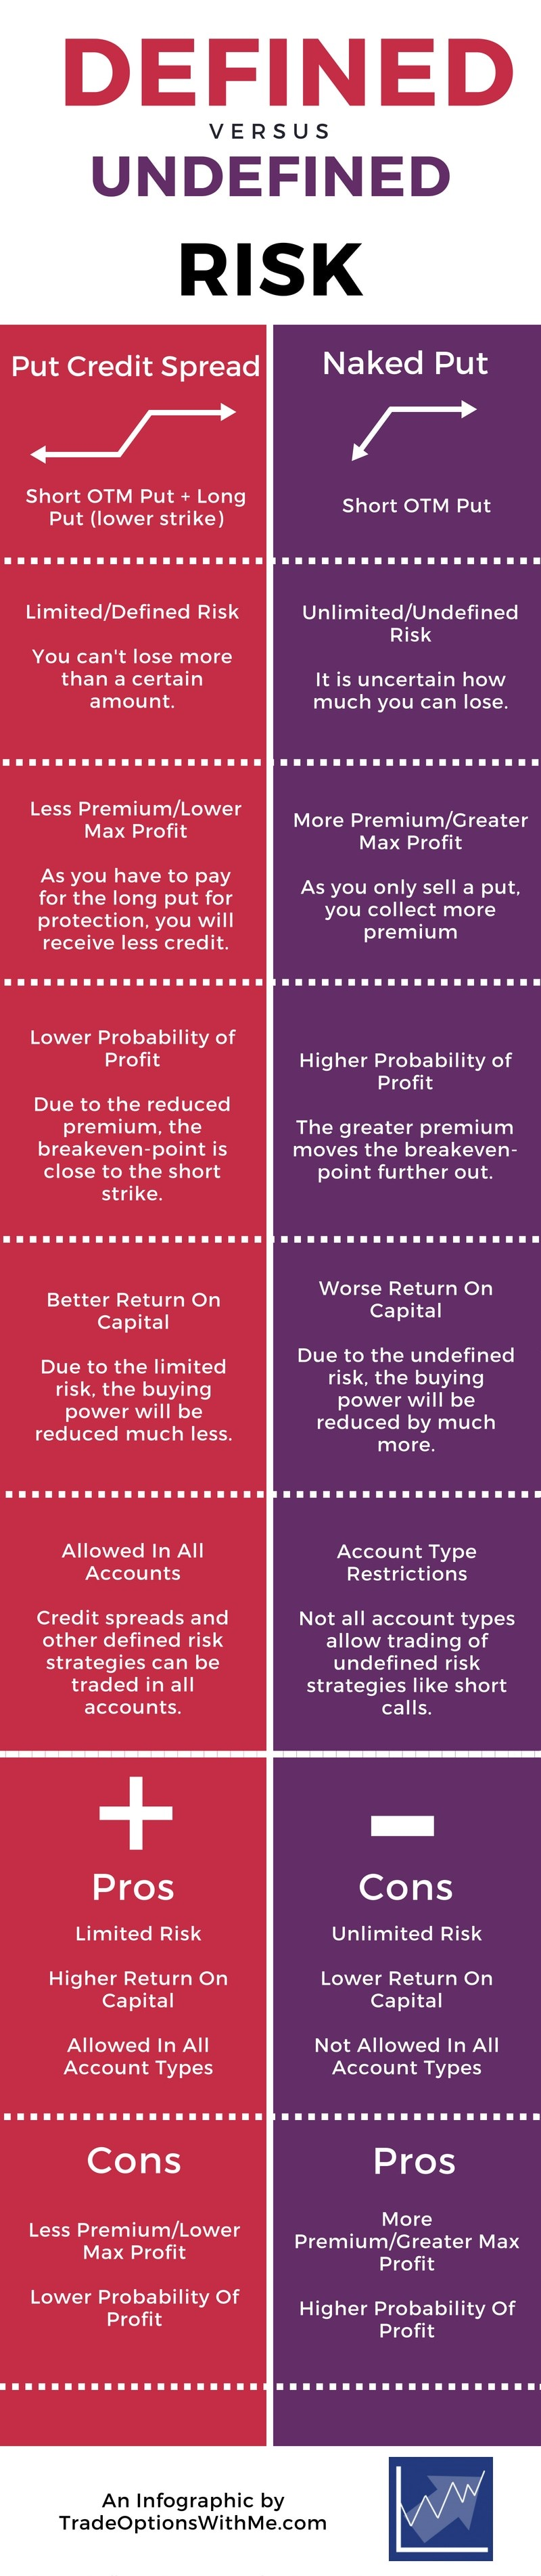 undefined vs defined risk infographic